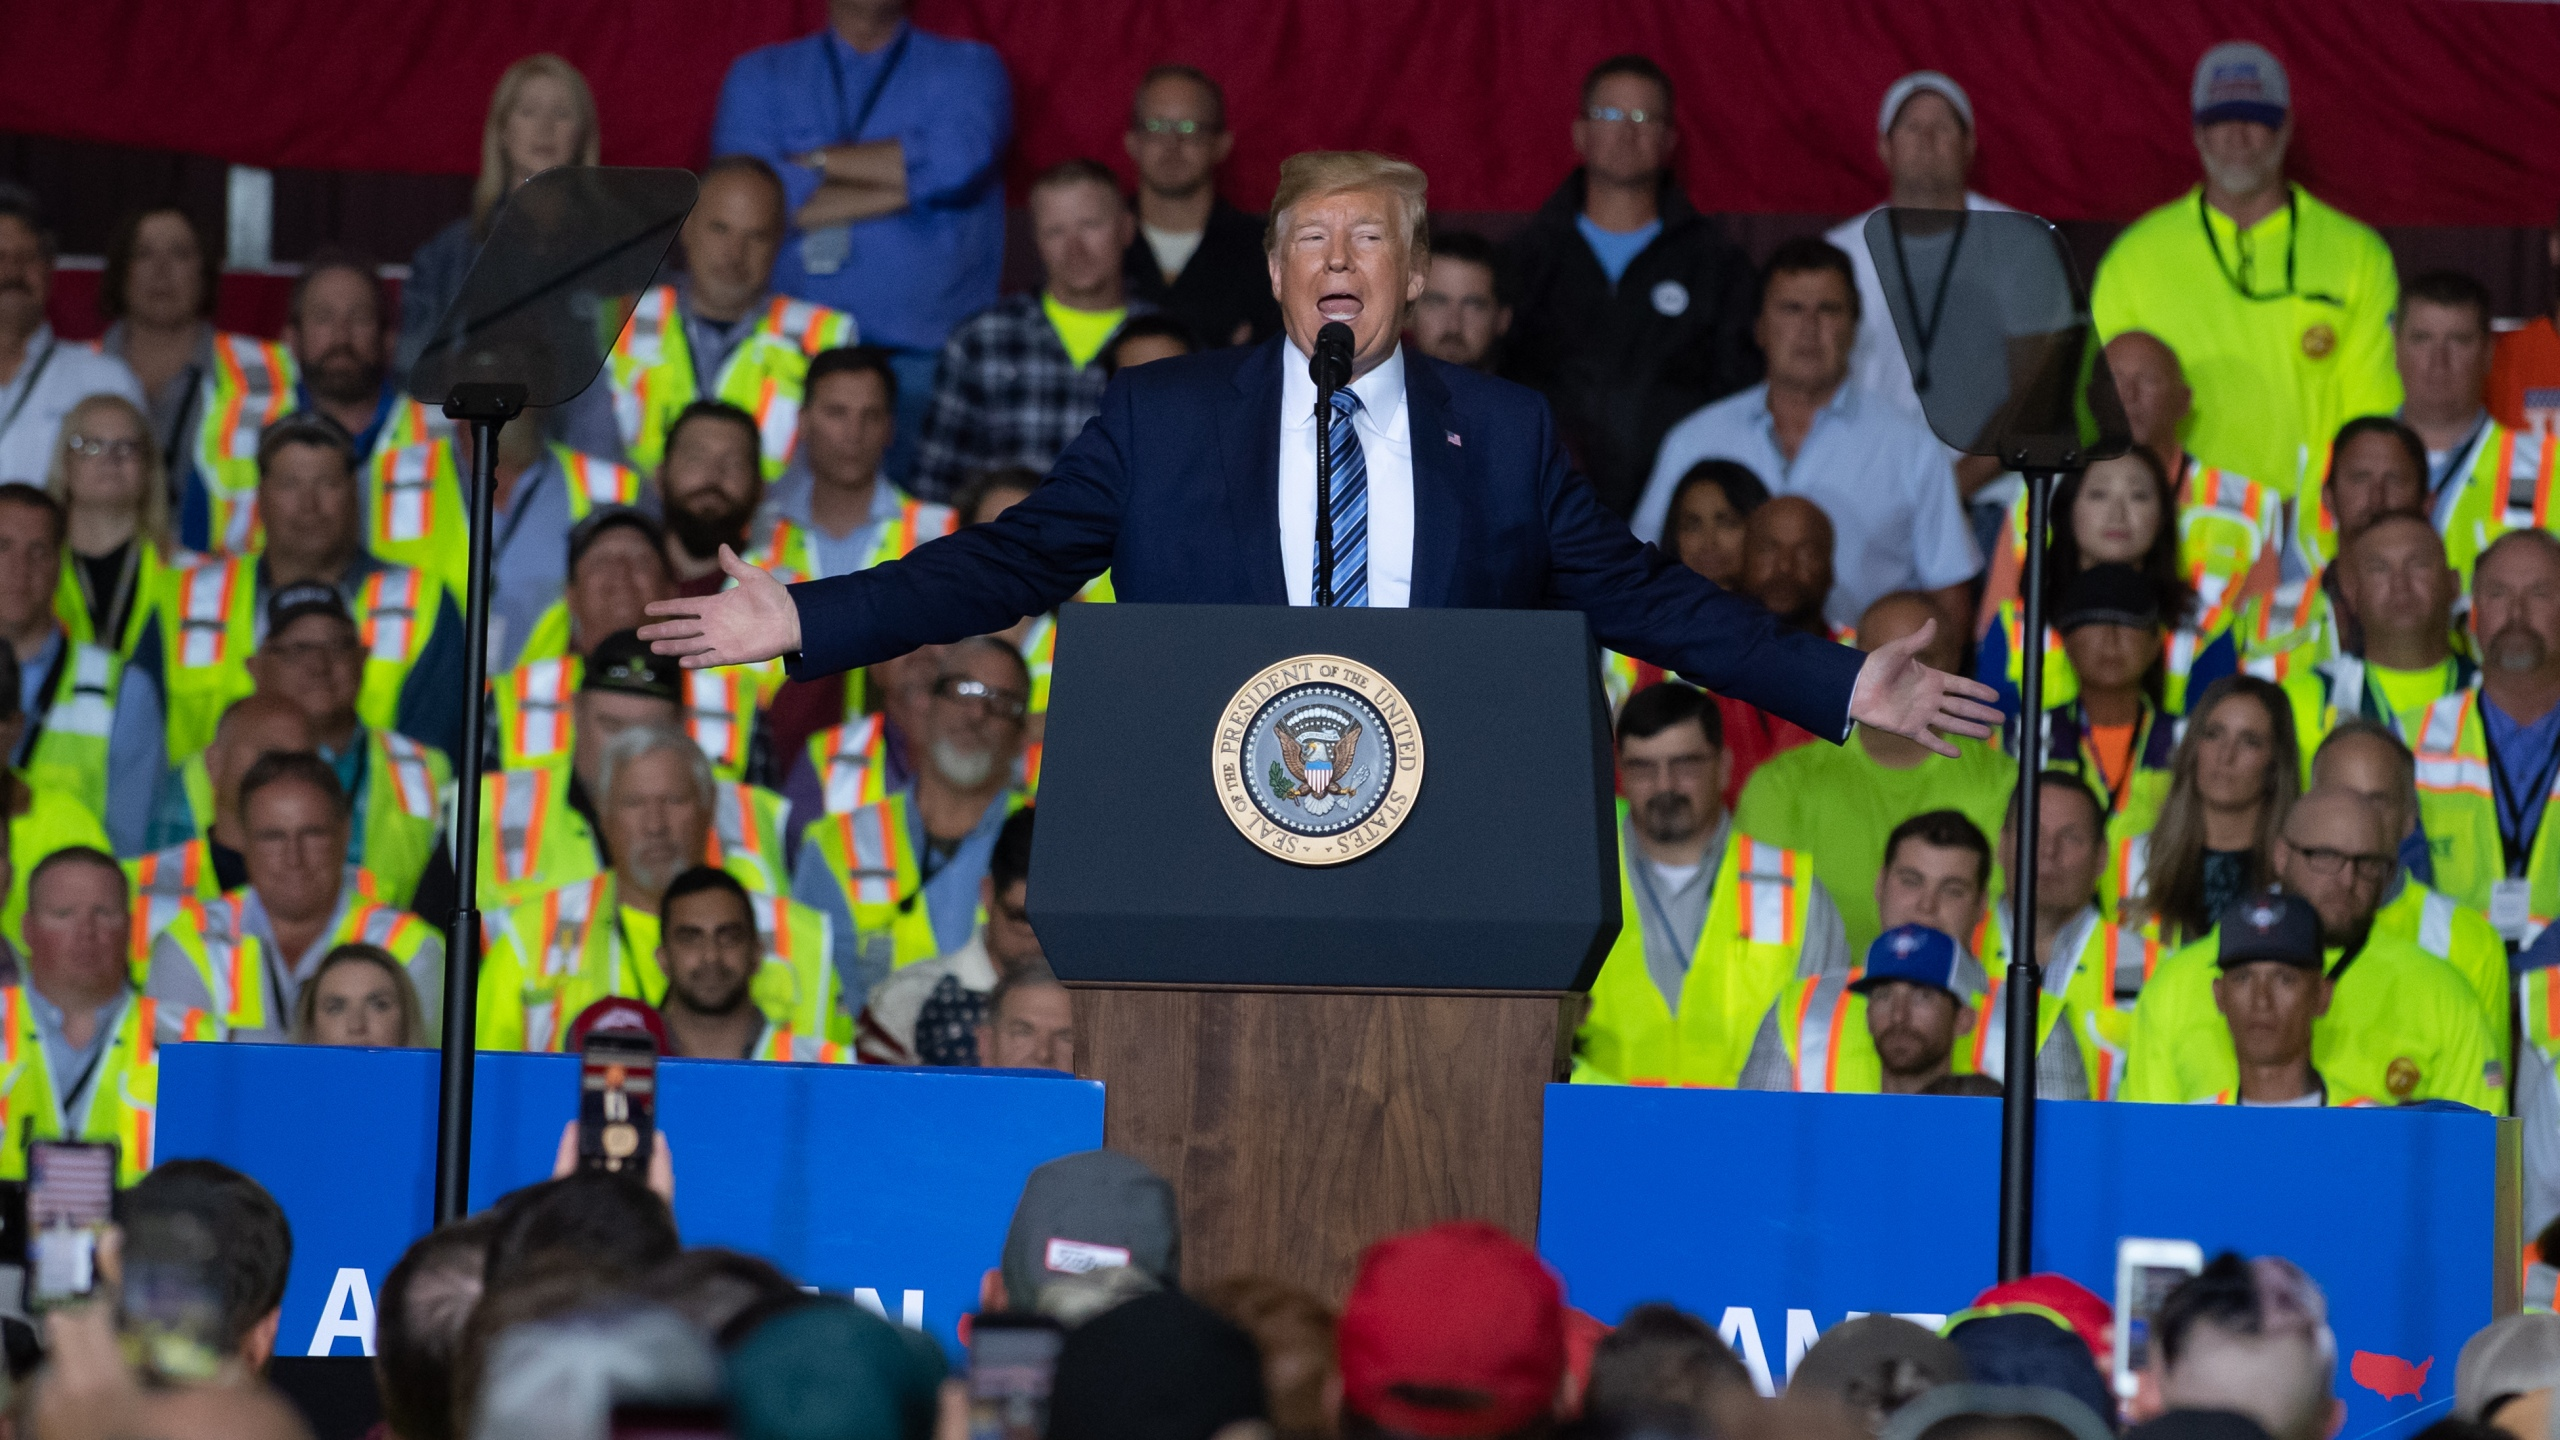 President Donald Trump speaks to 5000 contractors at the Shell Chemicals Petrochemical Complex on August 13, 2019 in Monaca, Pennsylvania. (Credit: Jeff Swensen/Getty Images)